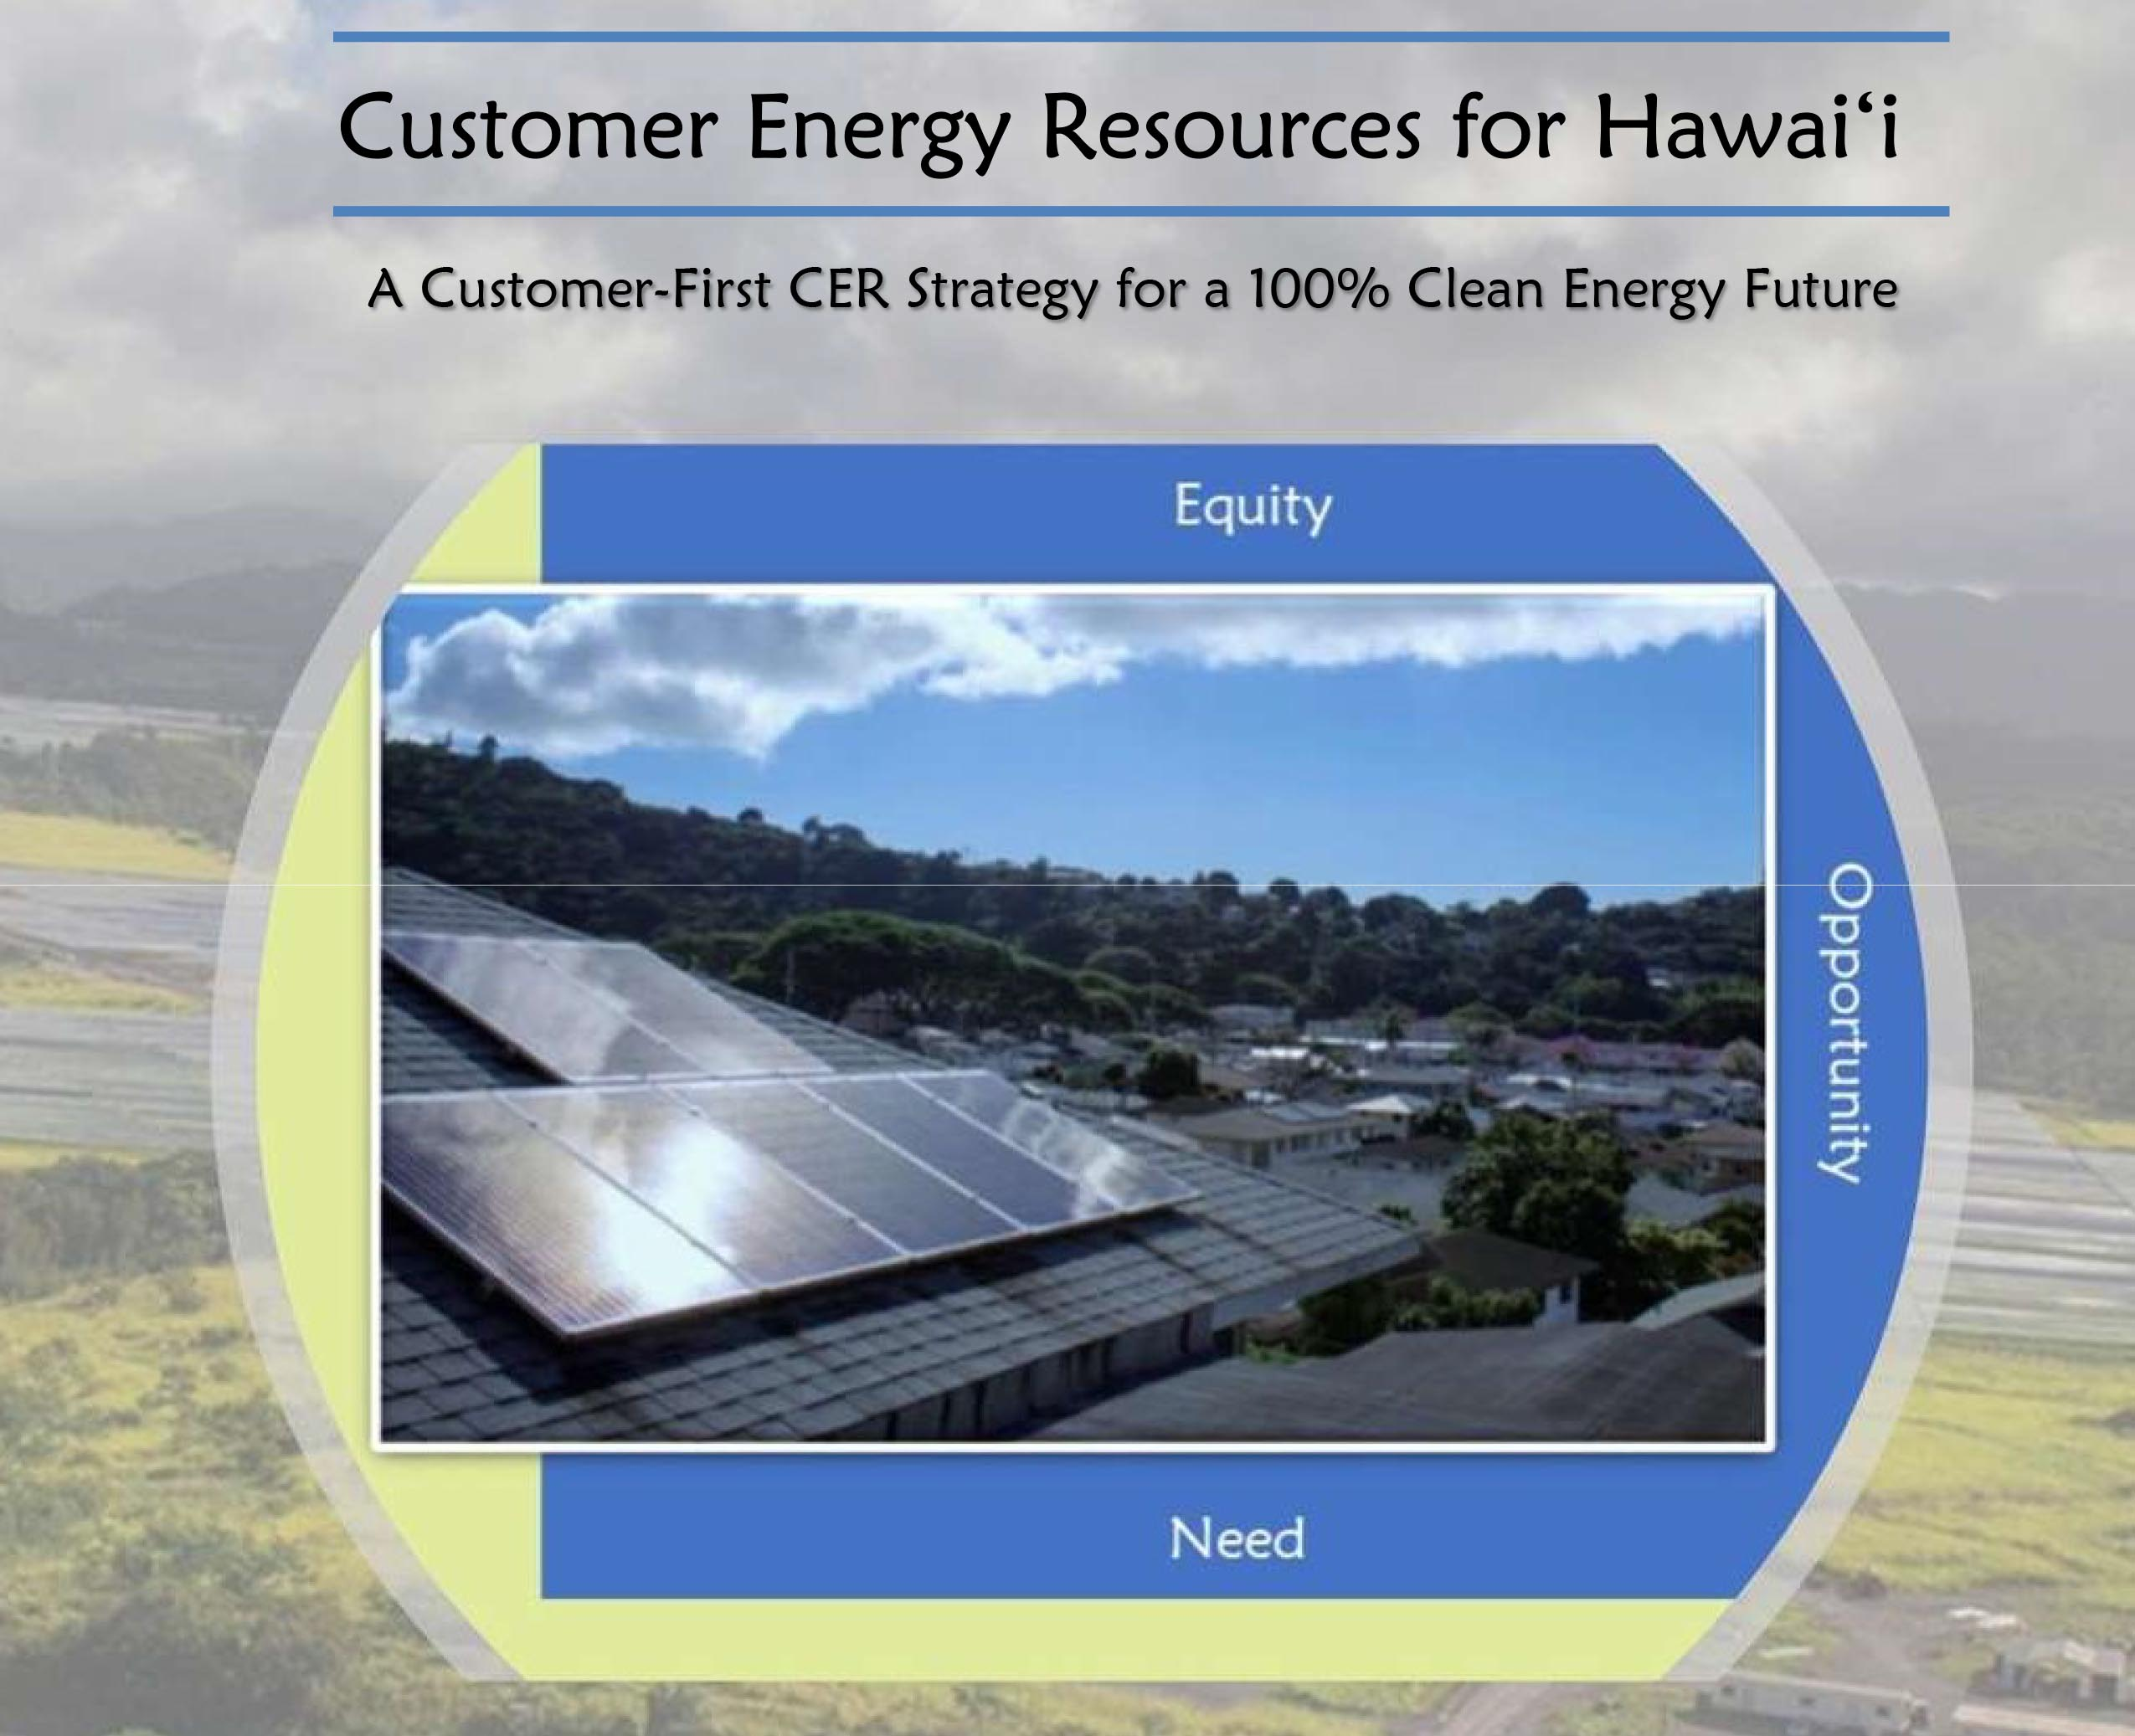 Hawaiian Electric Develops Plan To Ramp Up Rooftop Solar for 100% Clean Energy Goals